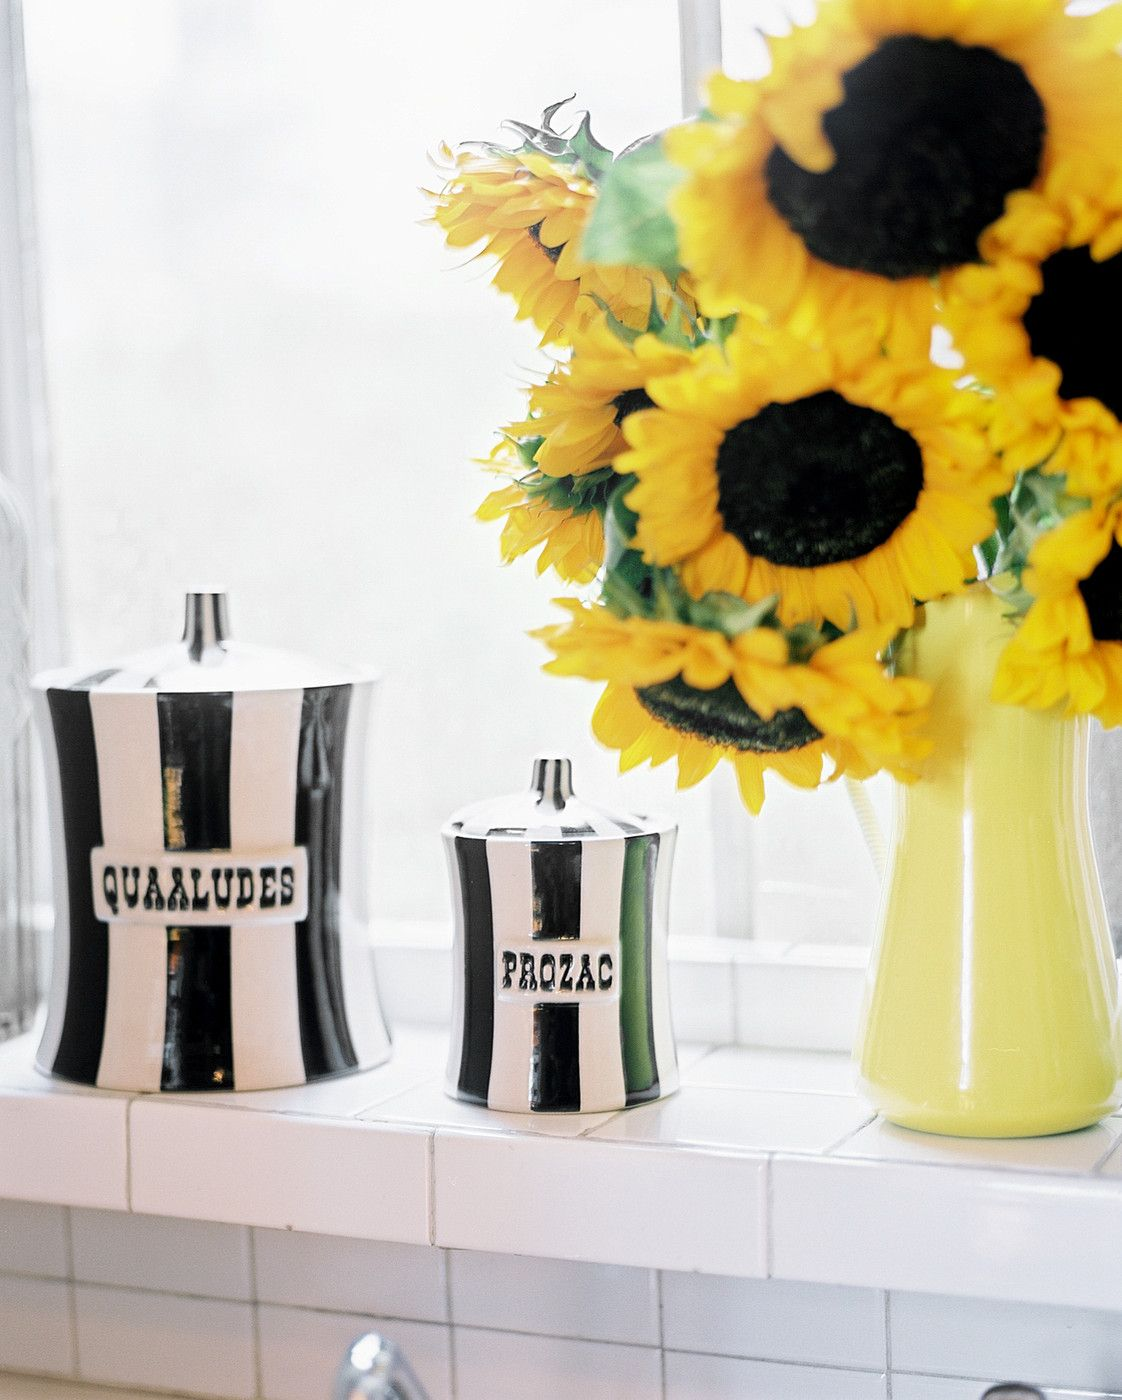 Eclectic Kitchen: Cheeky striped storage containers and a vase of flowers on a shelf covered with white tile.